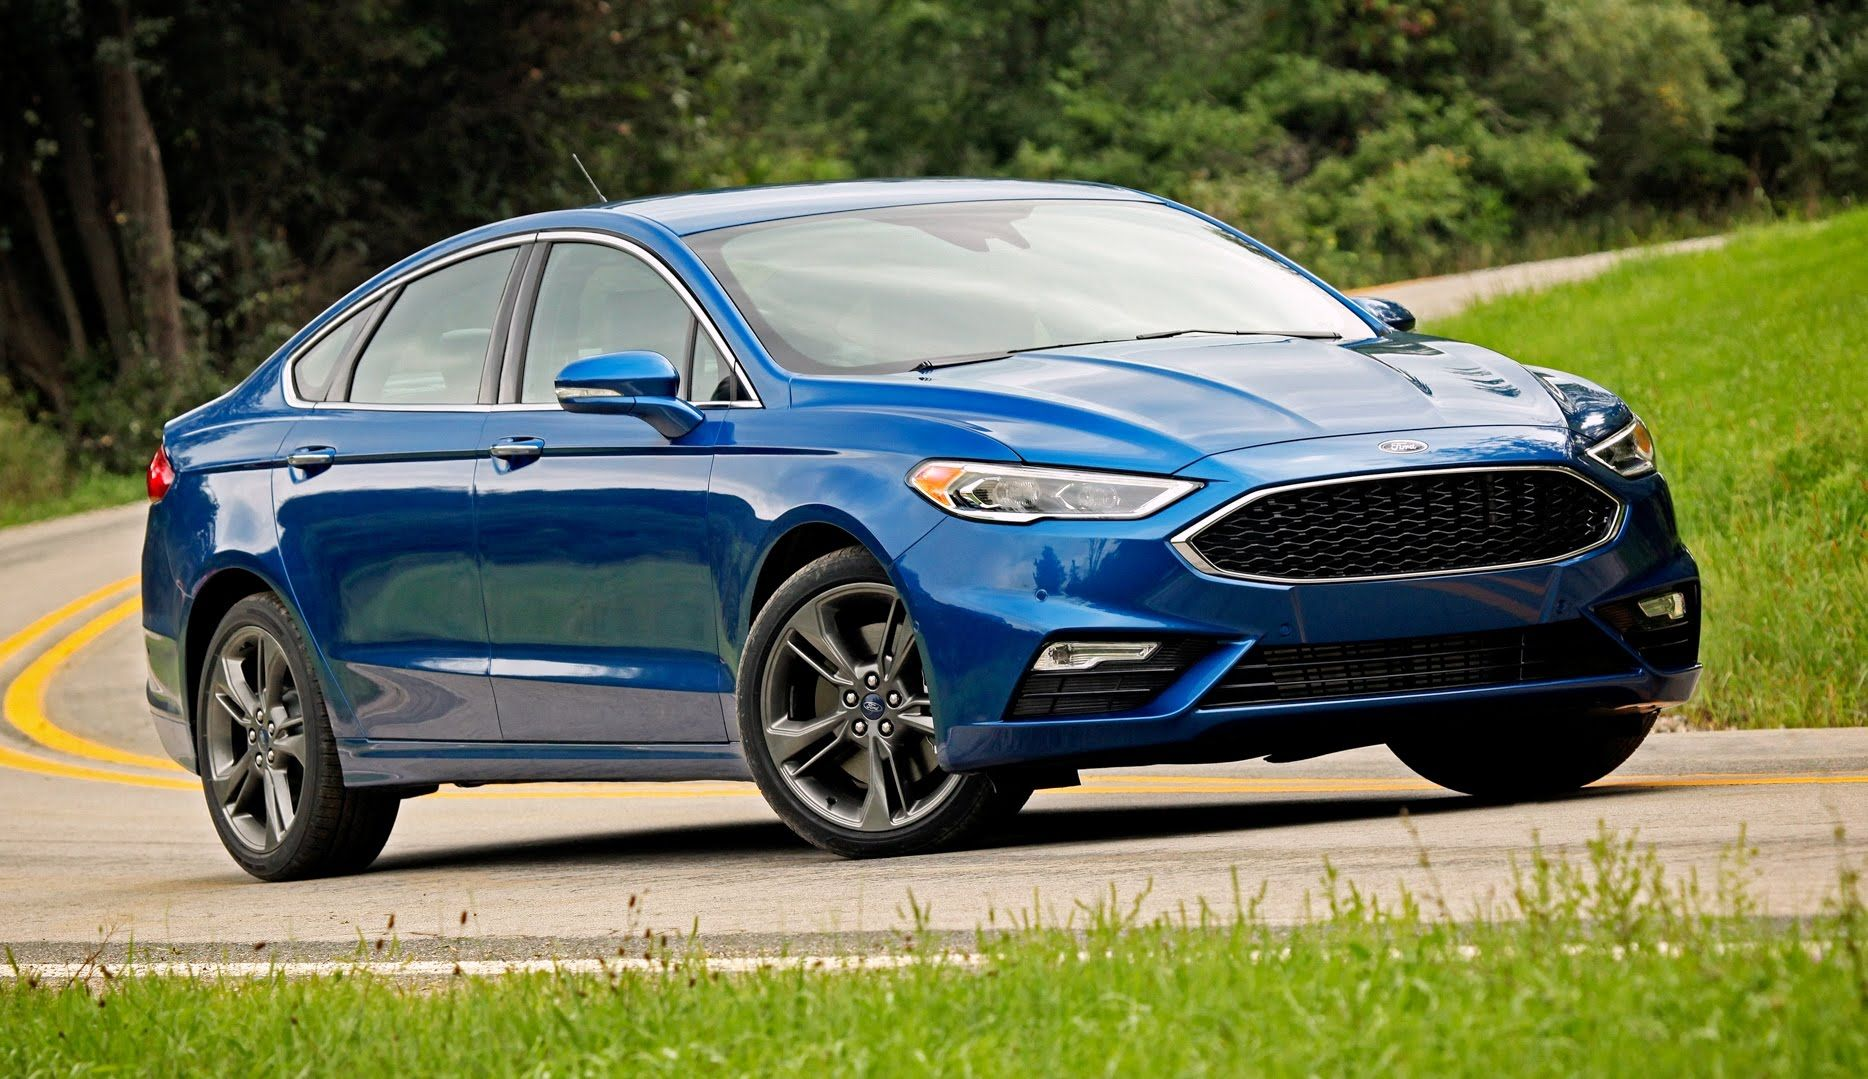 2017 ford fusion sport 2 7l twin turbo v6 325hp ford pinterest ford fusion watches and sports. Black Bedroom Furniture Sets. Home Design Ideas